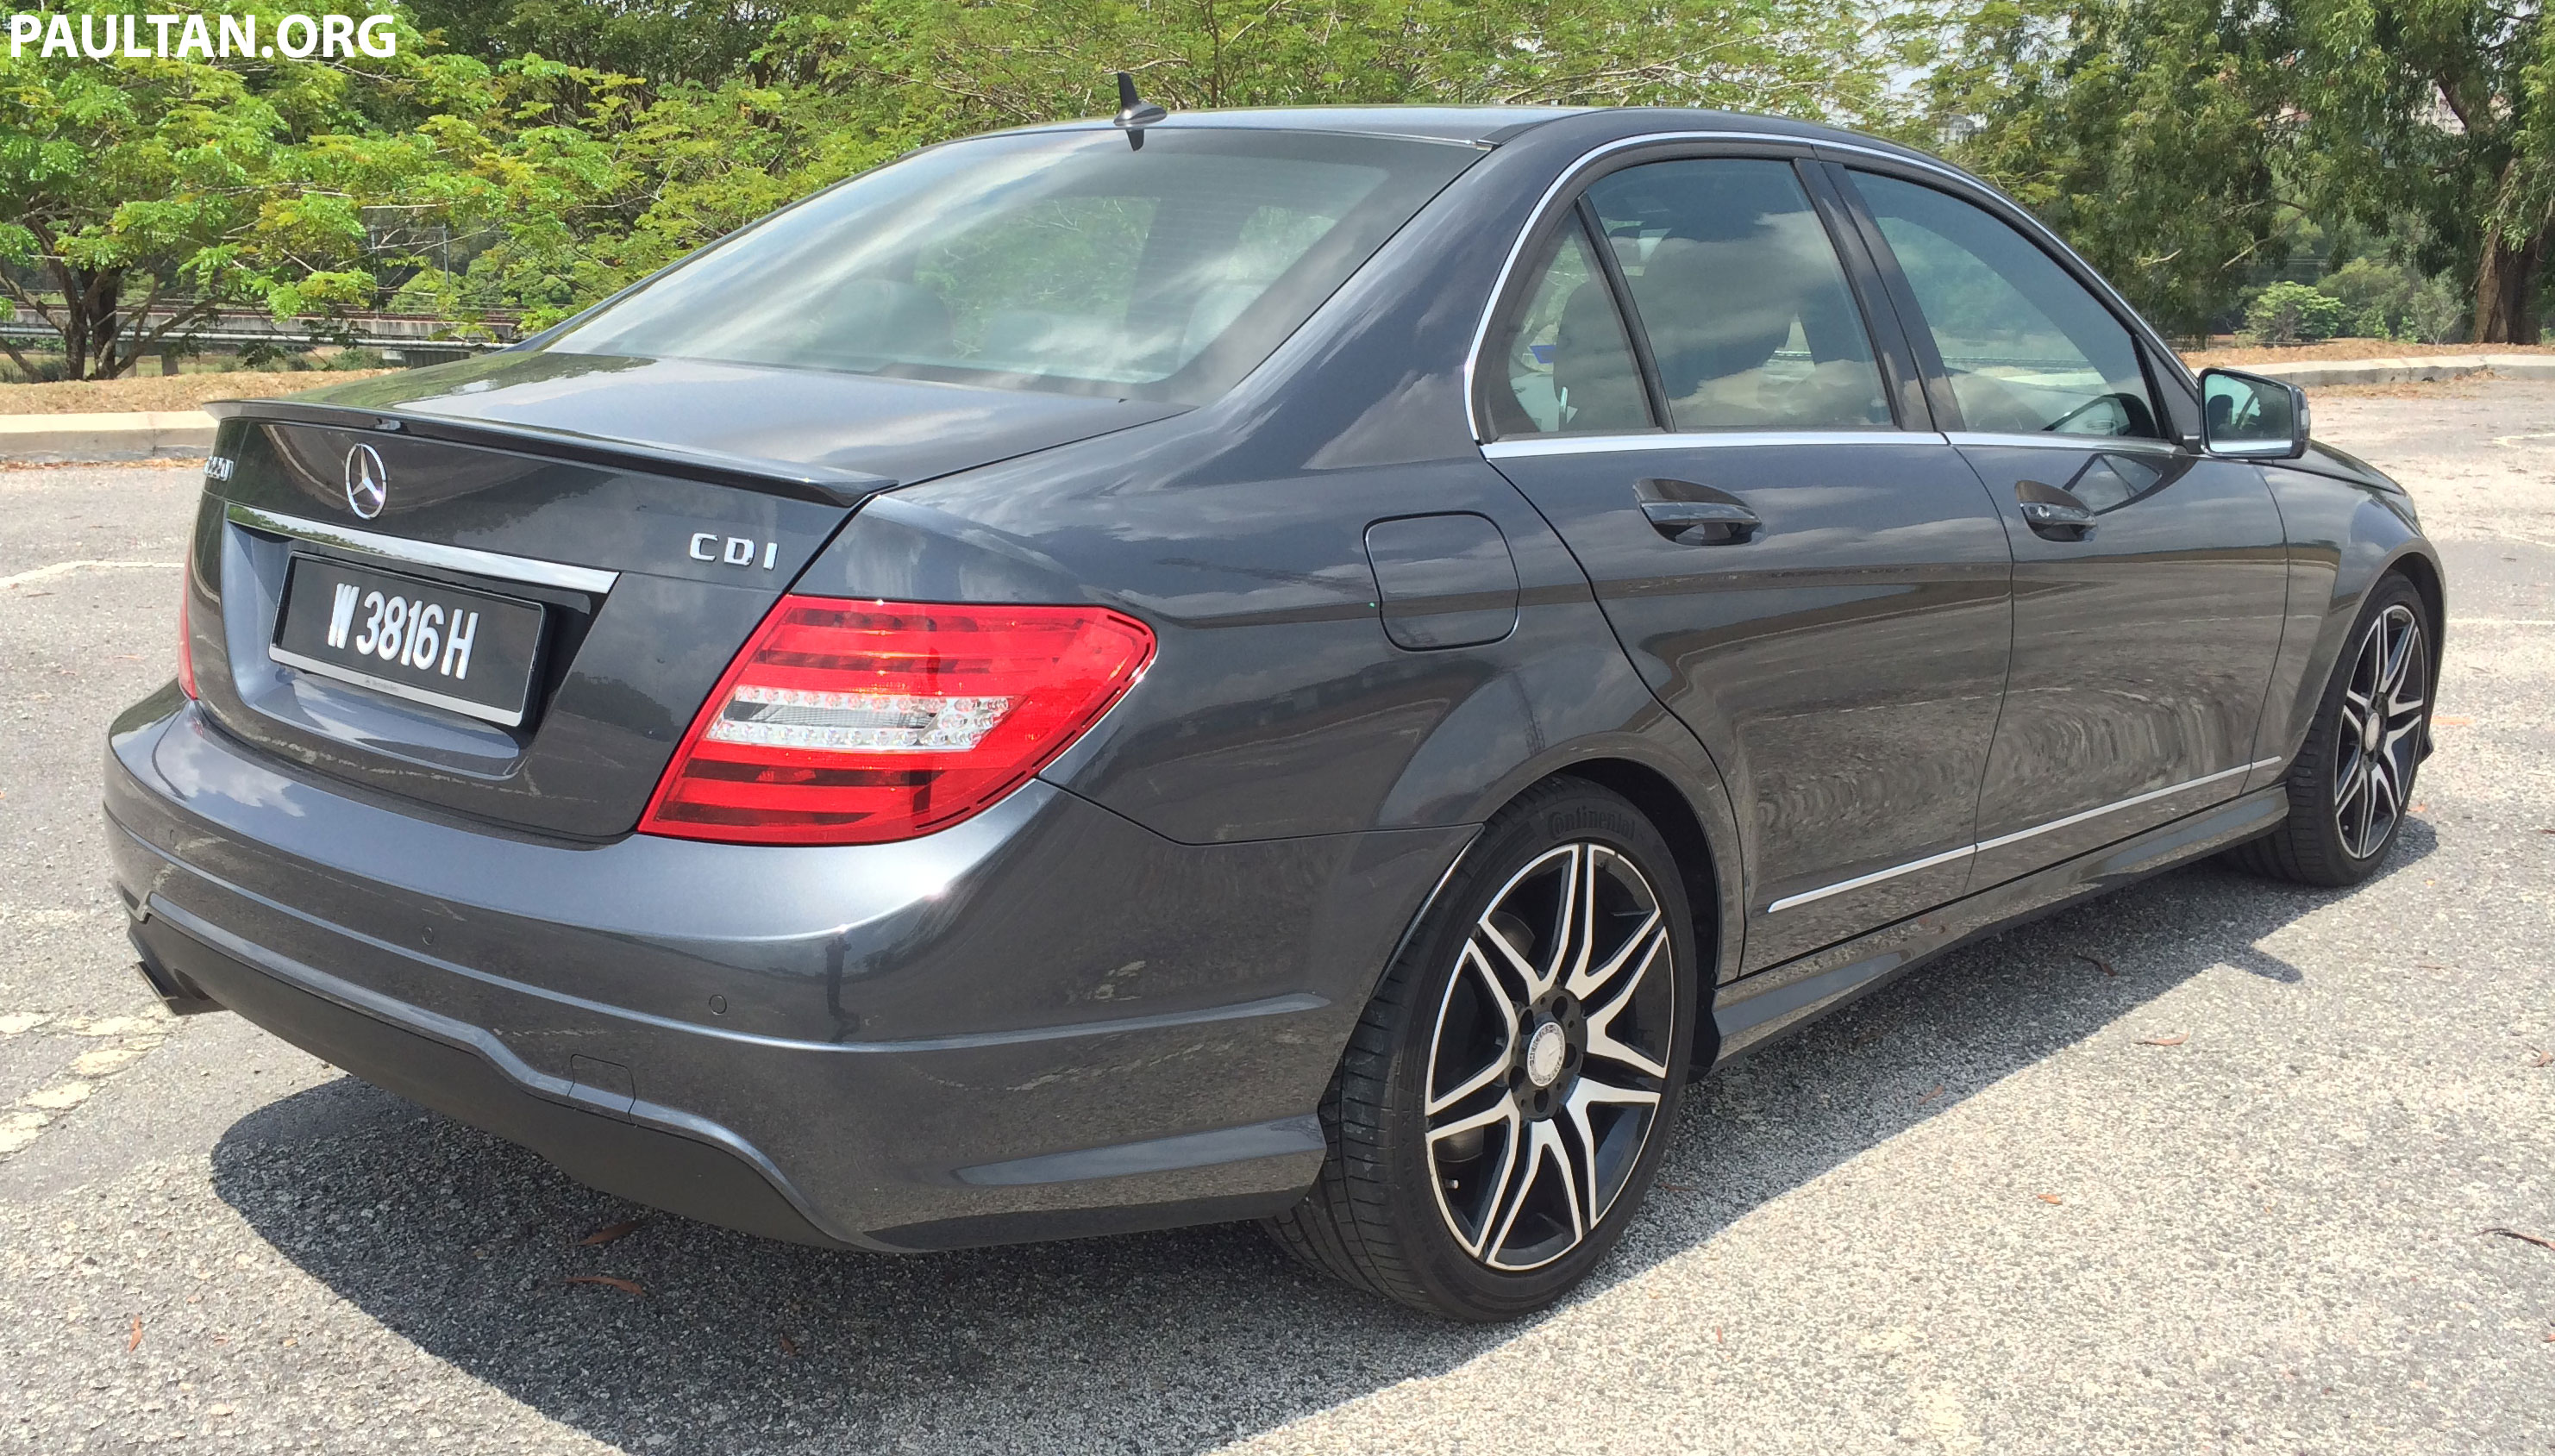 Mercedes Benz Demo Cars For Sale